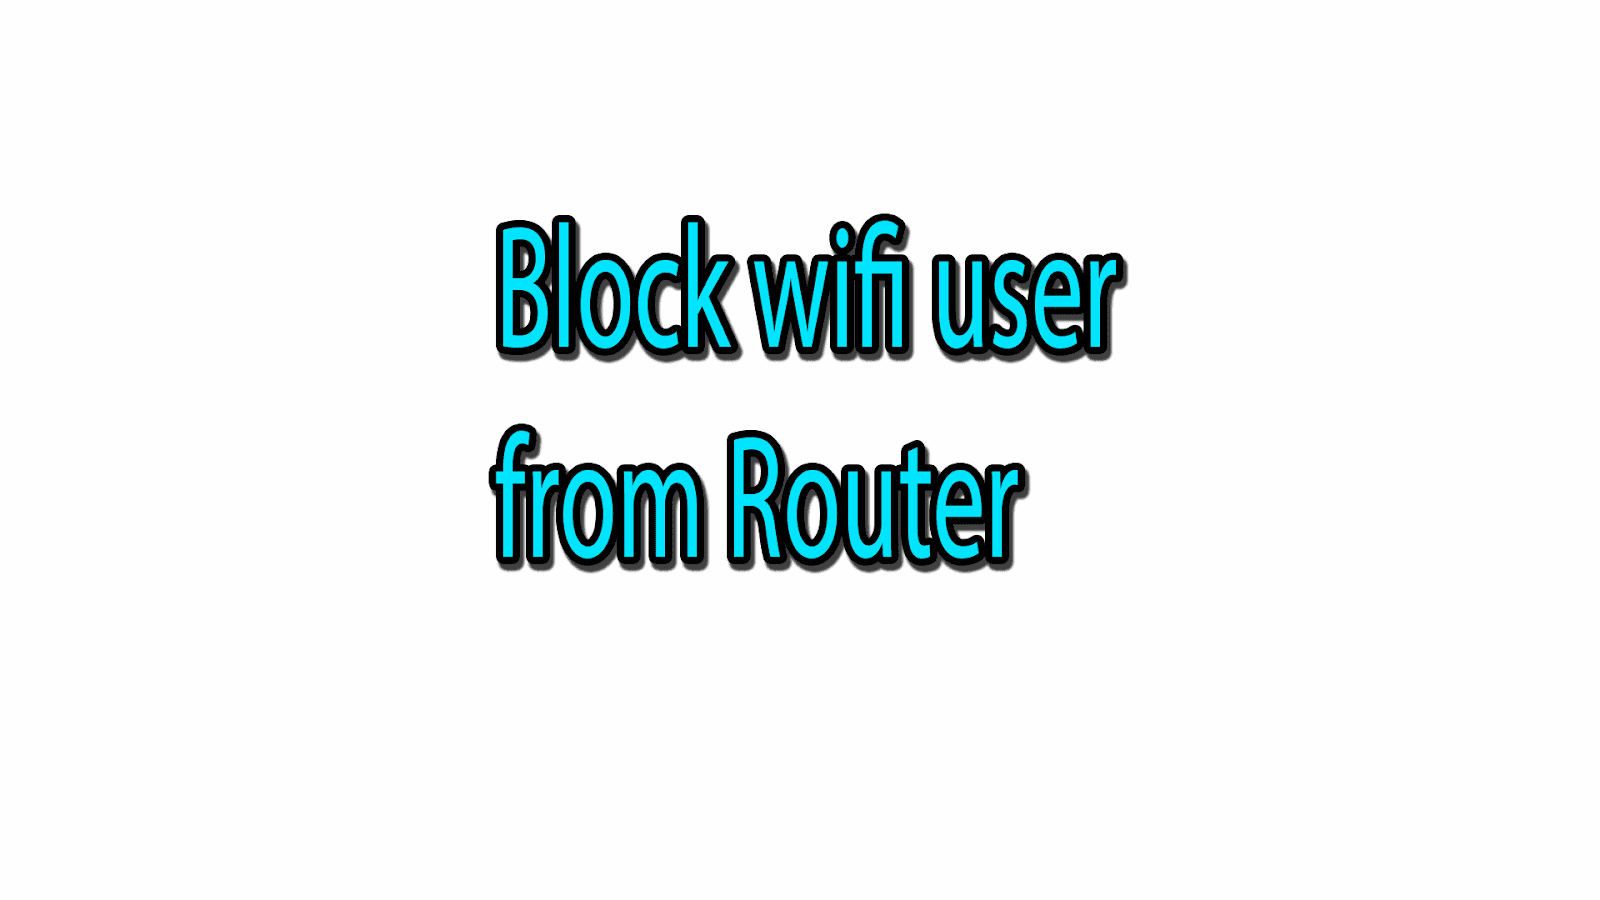 How to Block wifi user from router Tp-Link - Urdu Tutorials